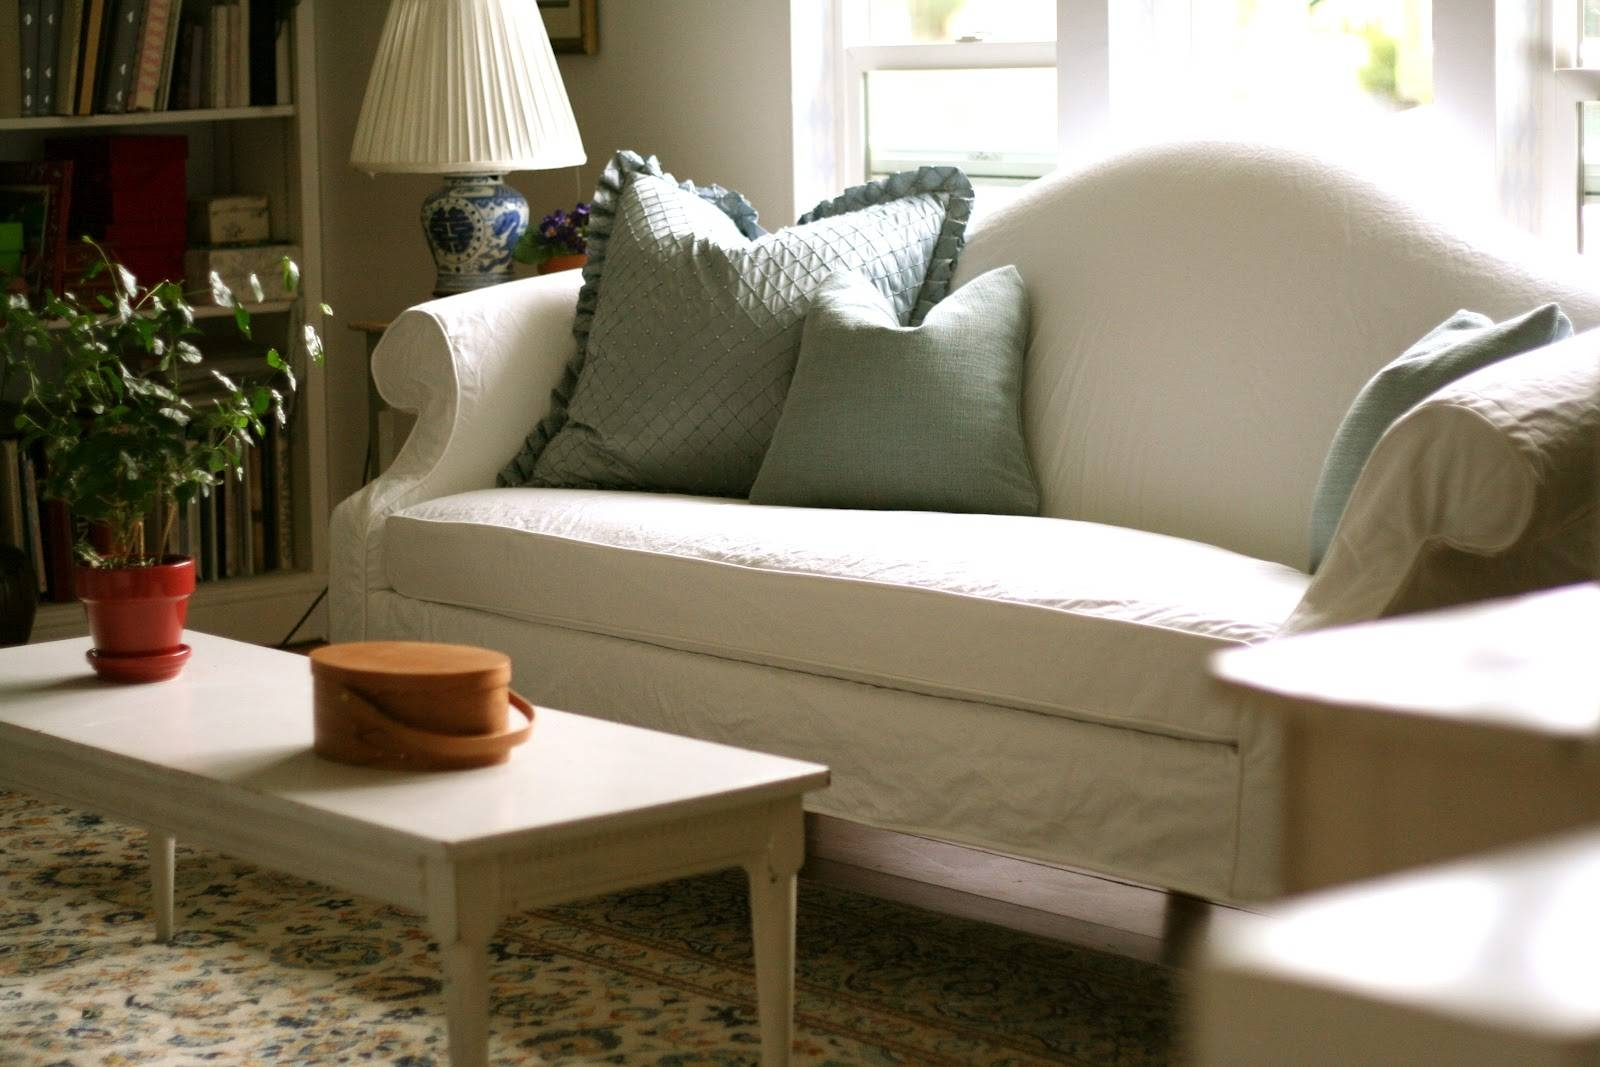 Custom Slipcoversshelley: White Camel Back Couch with Camel Back Couch Slipcovers (Image 11 of 15)